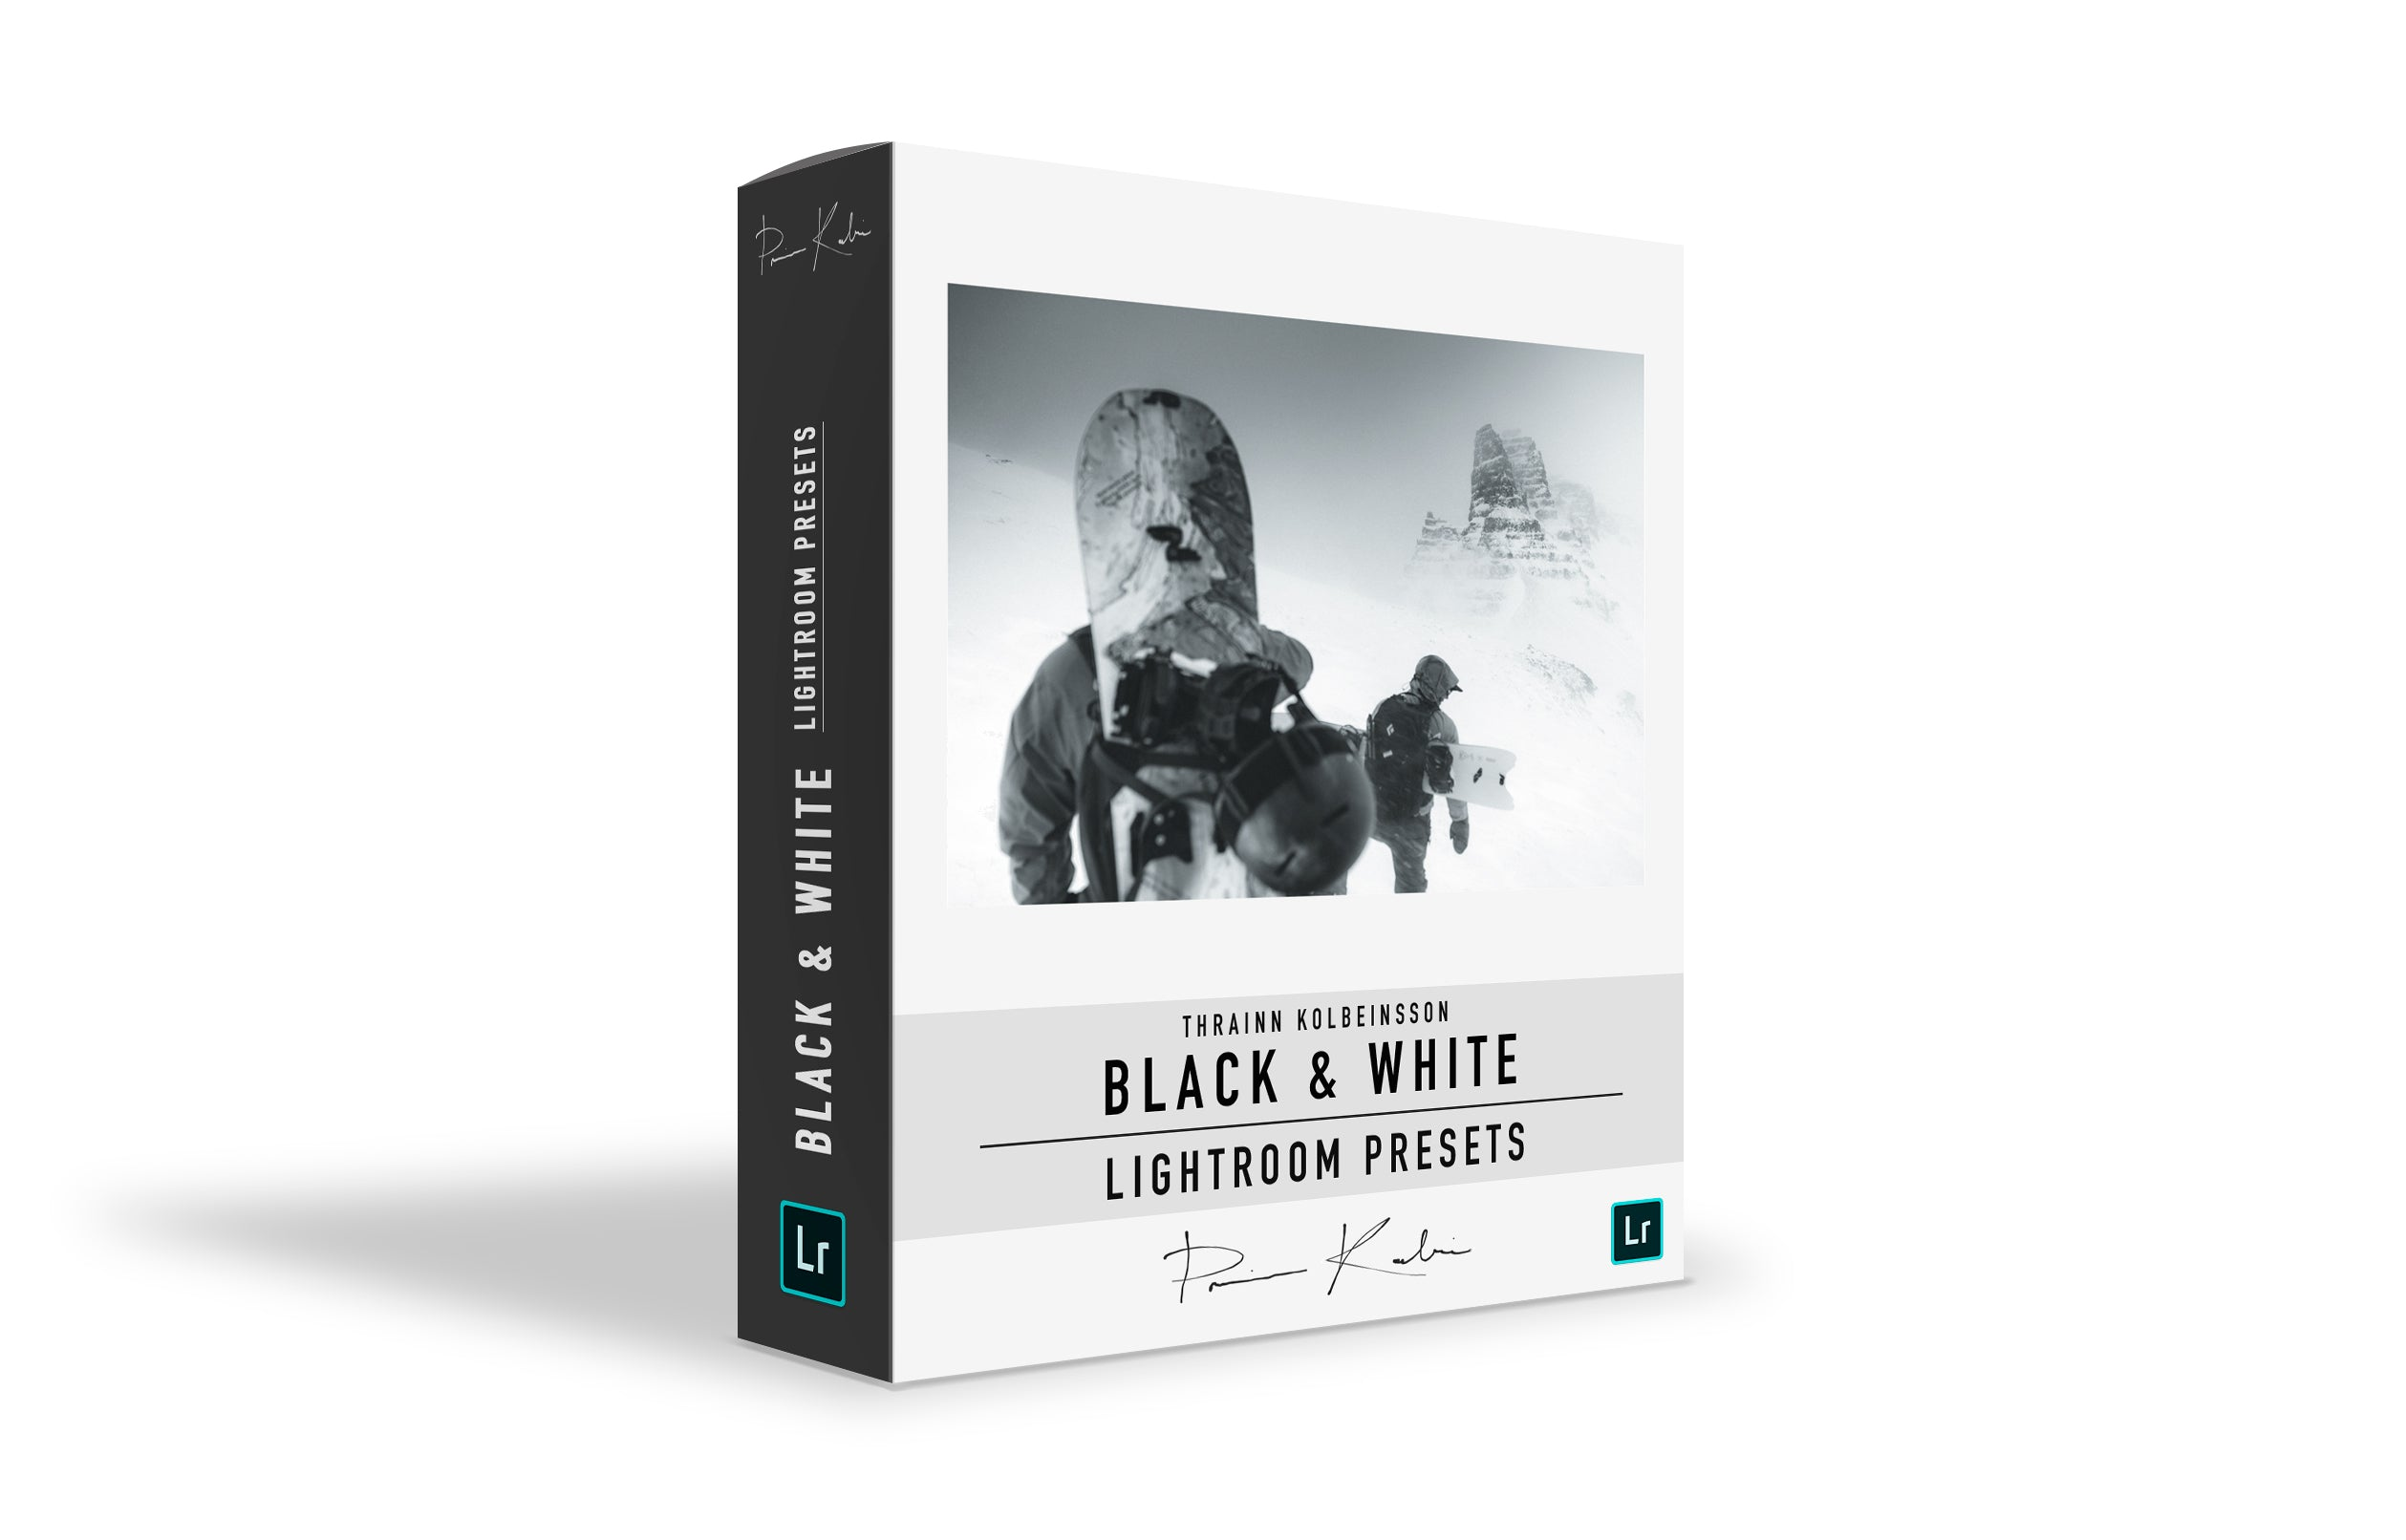 Lightroom Presets: BLACK & WHITE COLLECTION